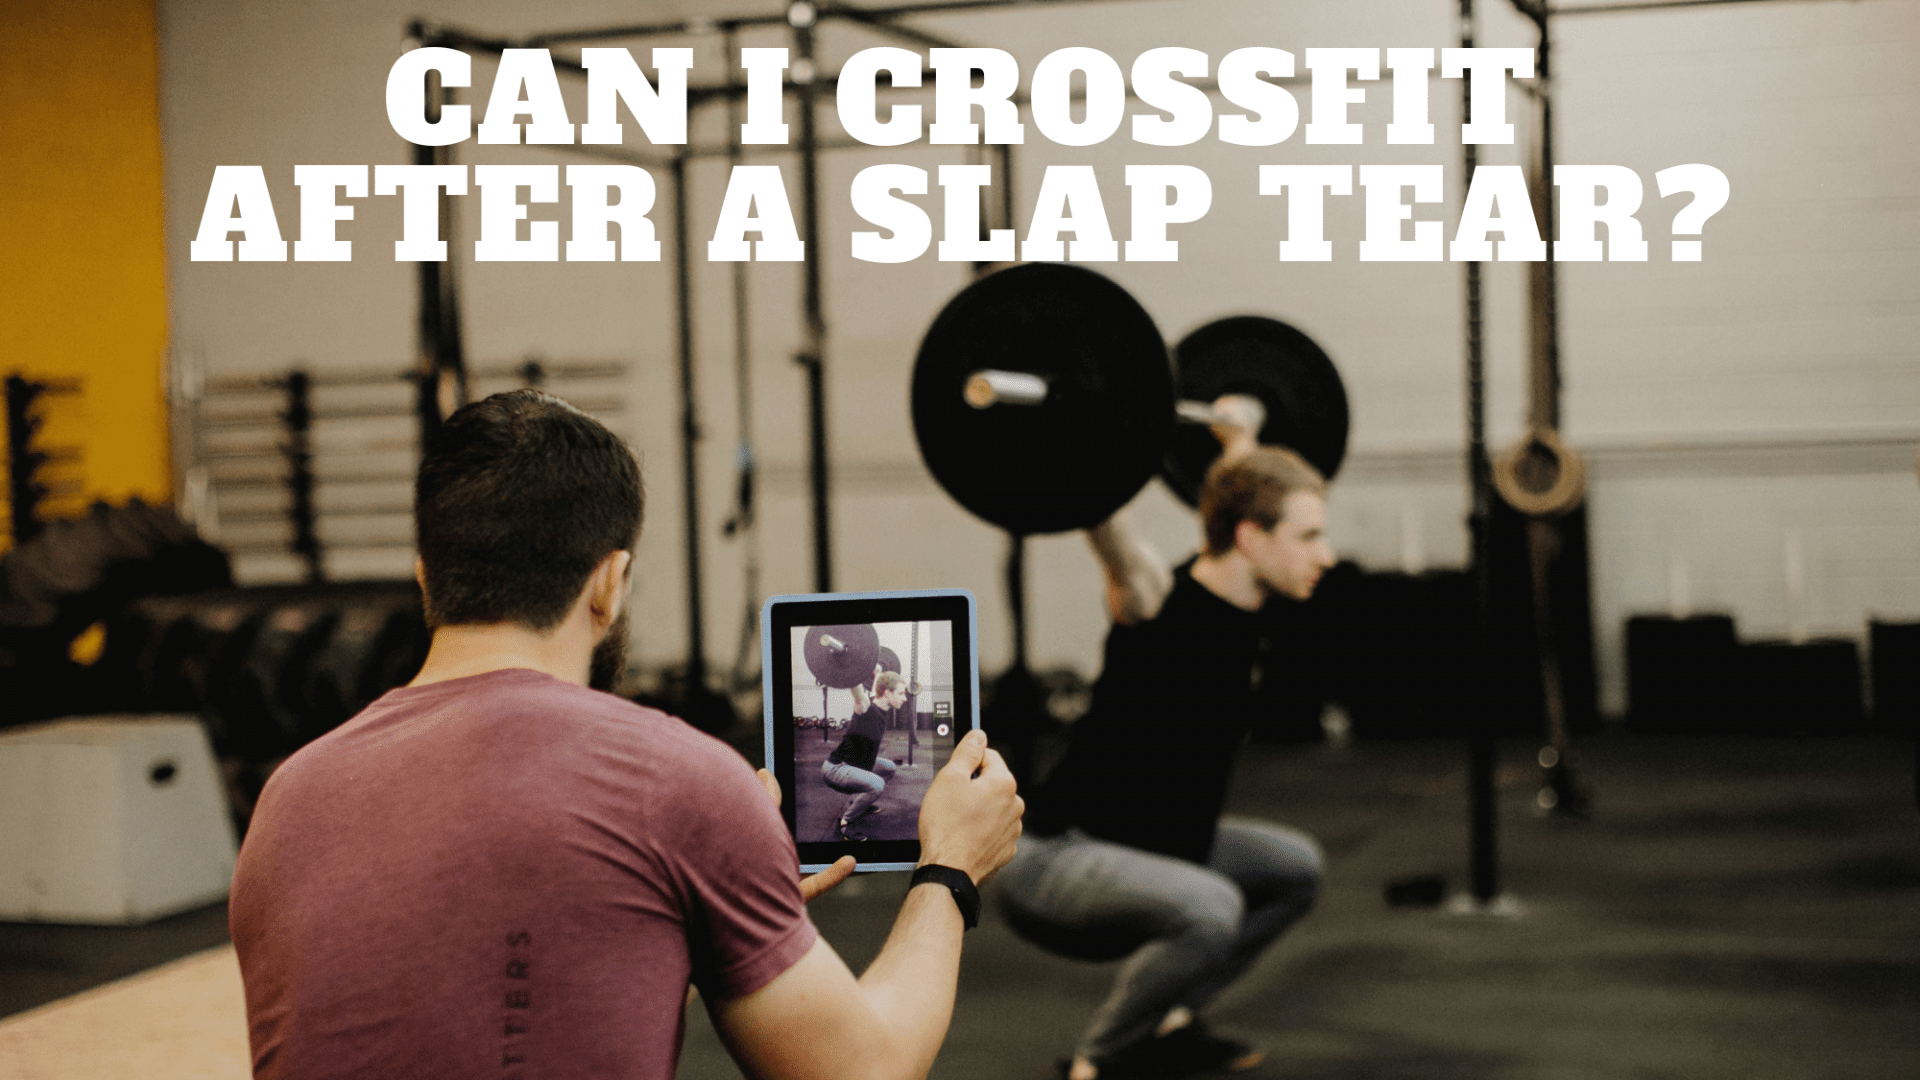 Crossfit after slap tear cover